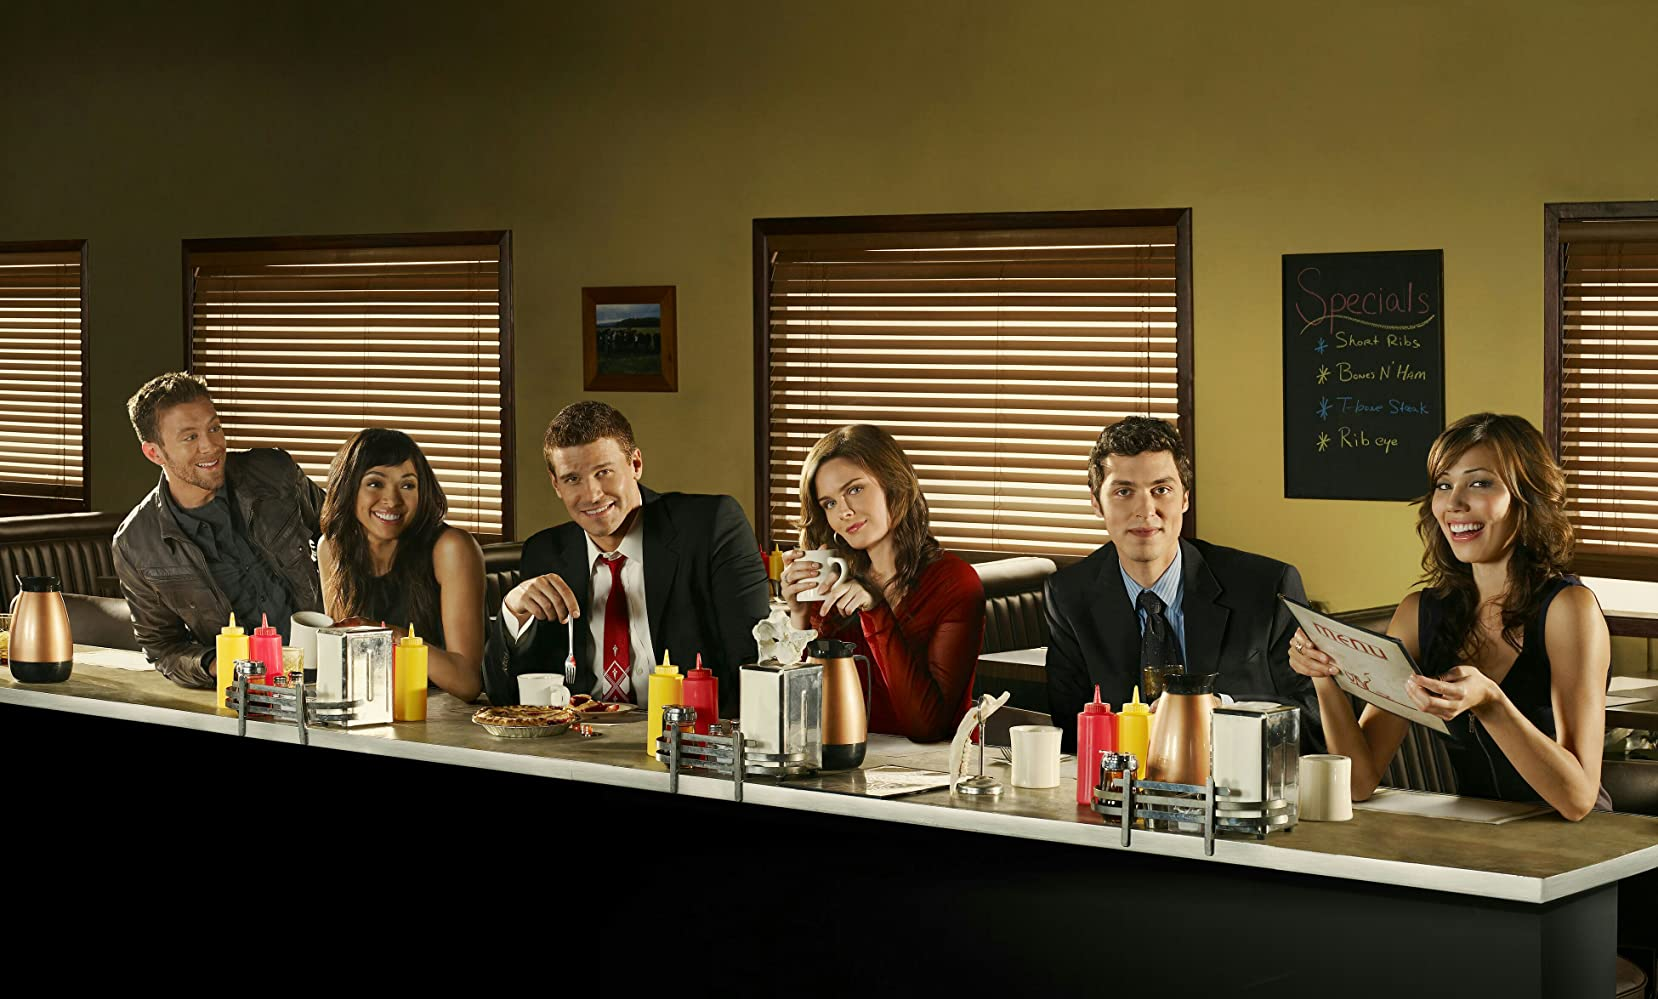 David Boreanaz, Michaela Conlin, John Francis Daley, Emily Deschanel, Tamara Taylor, and T.J. Thyne in Bones (2005)